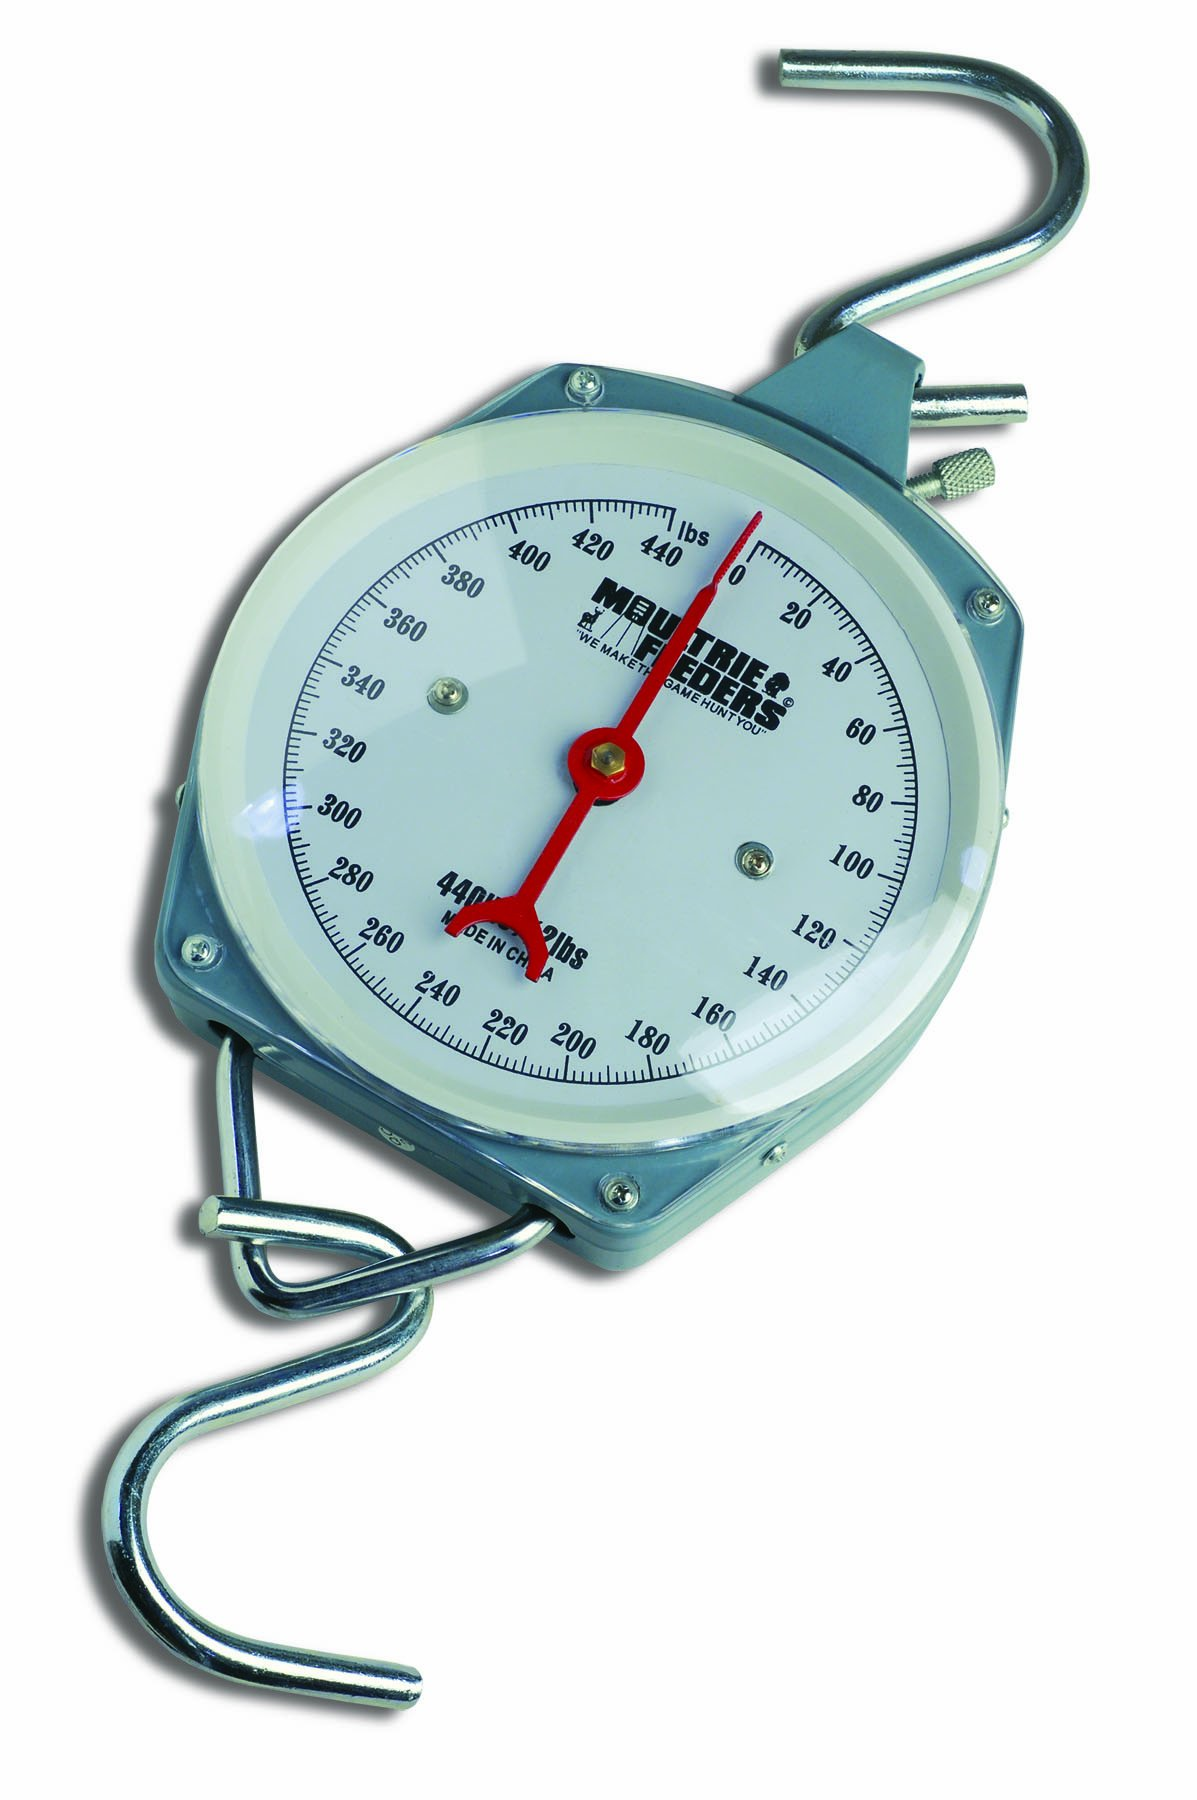 Moultrie 440 lb. Game Scale   400 lb. Capacity   All Steel   2 S-Hooks   Easy to Read Dial by Moultrie